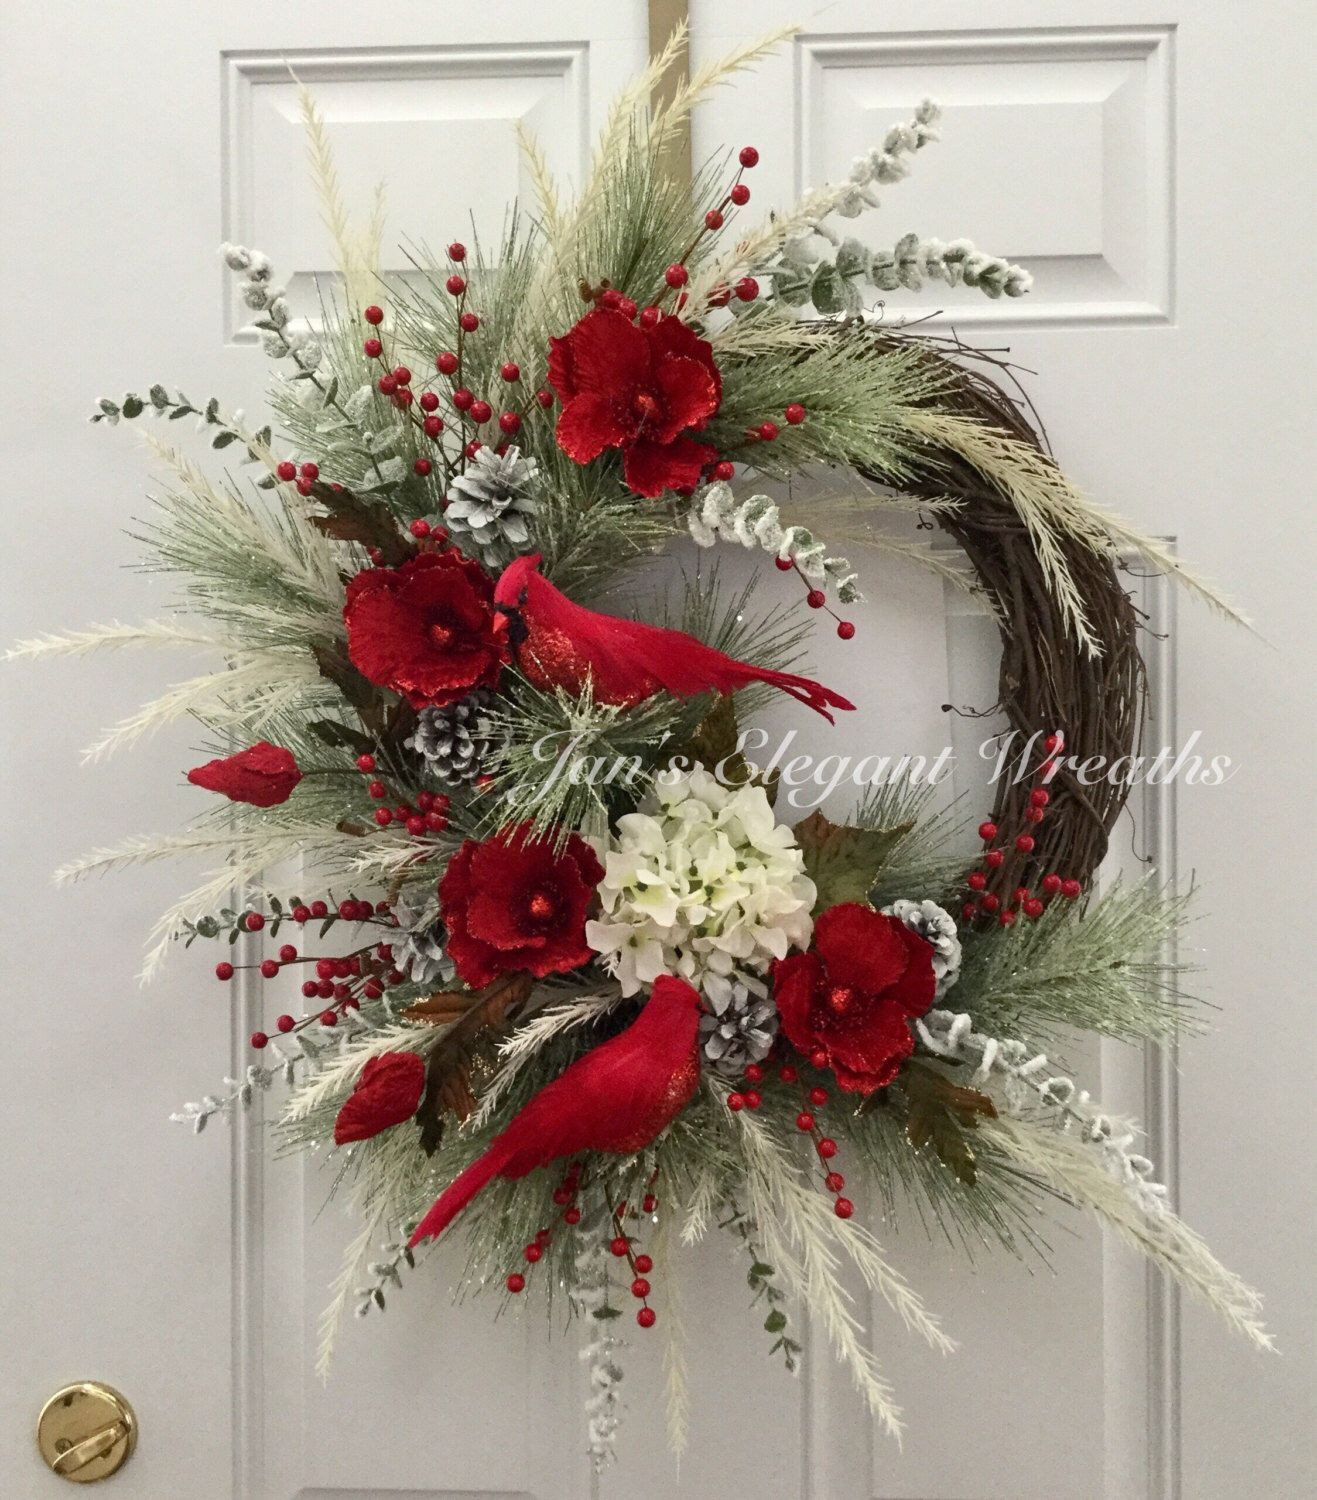 Christmas elegance to beautify your home inside or out